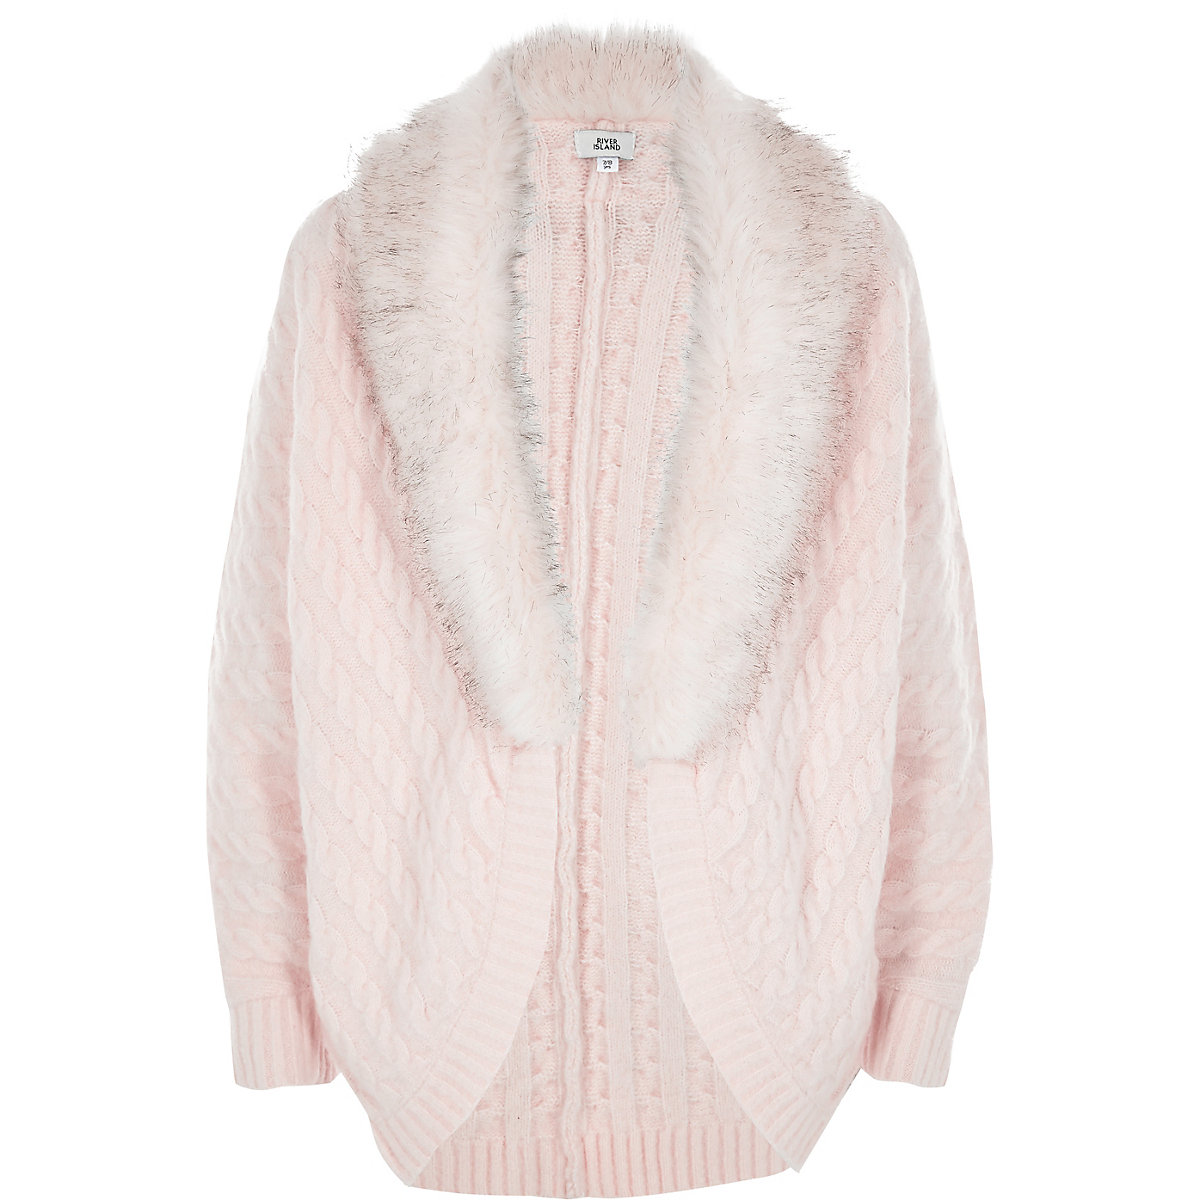 Girls pink cable knit faux fur cardigan